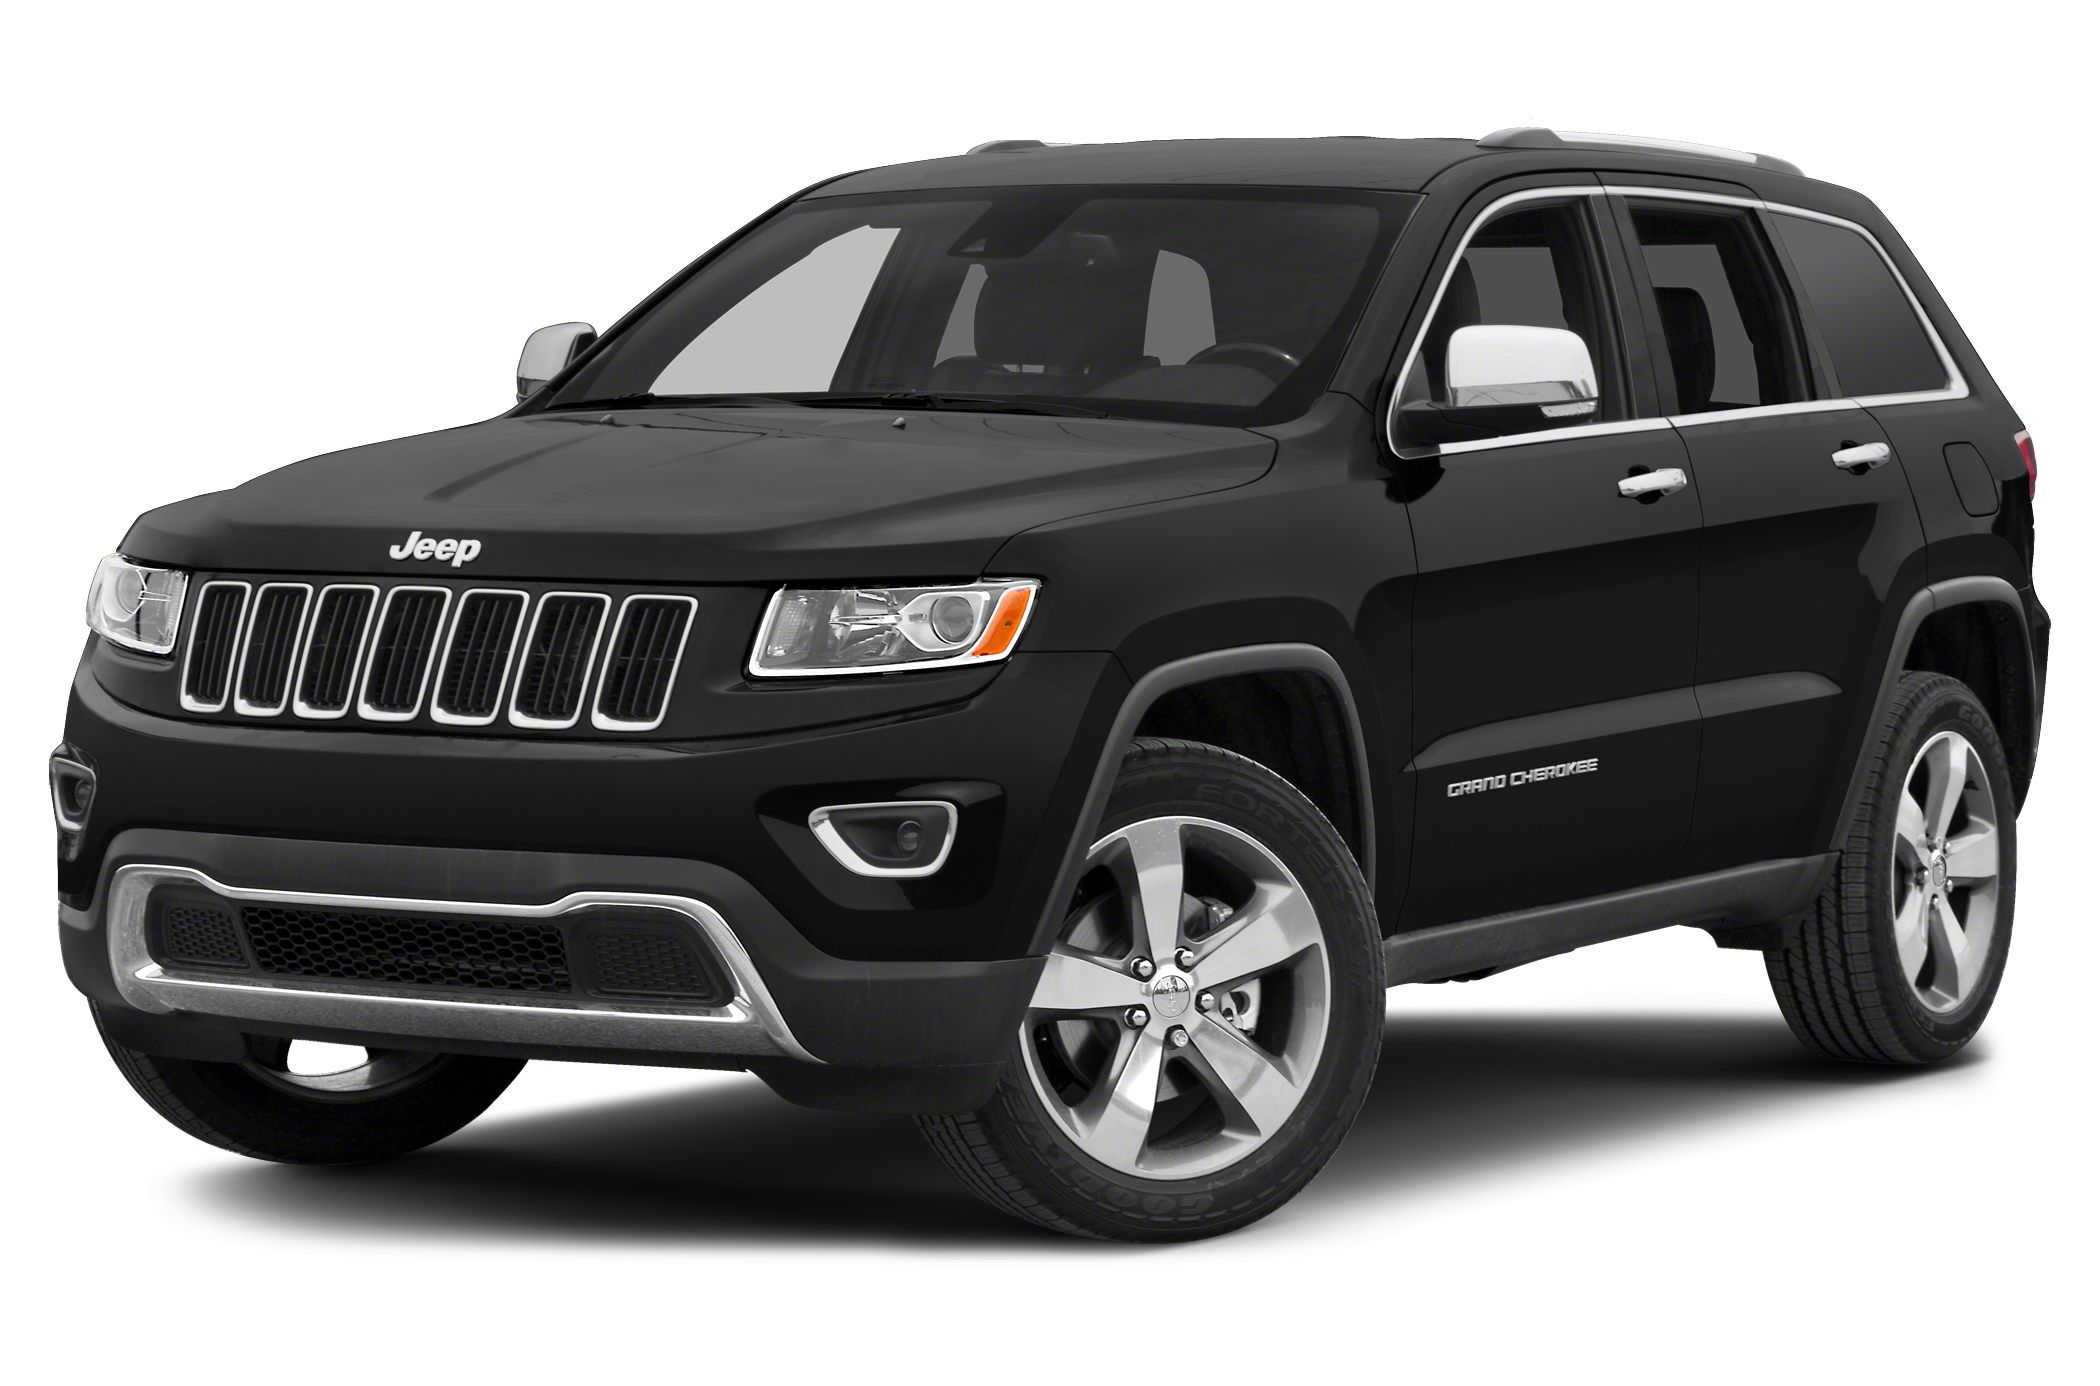 Jeep Grand Cherokee 2015 Black Google Search Jeep Grand